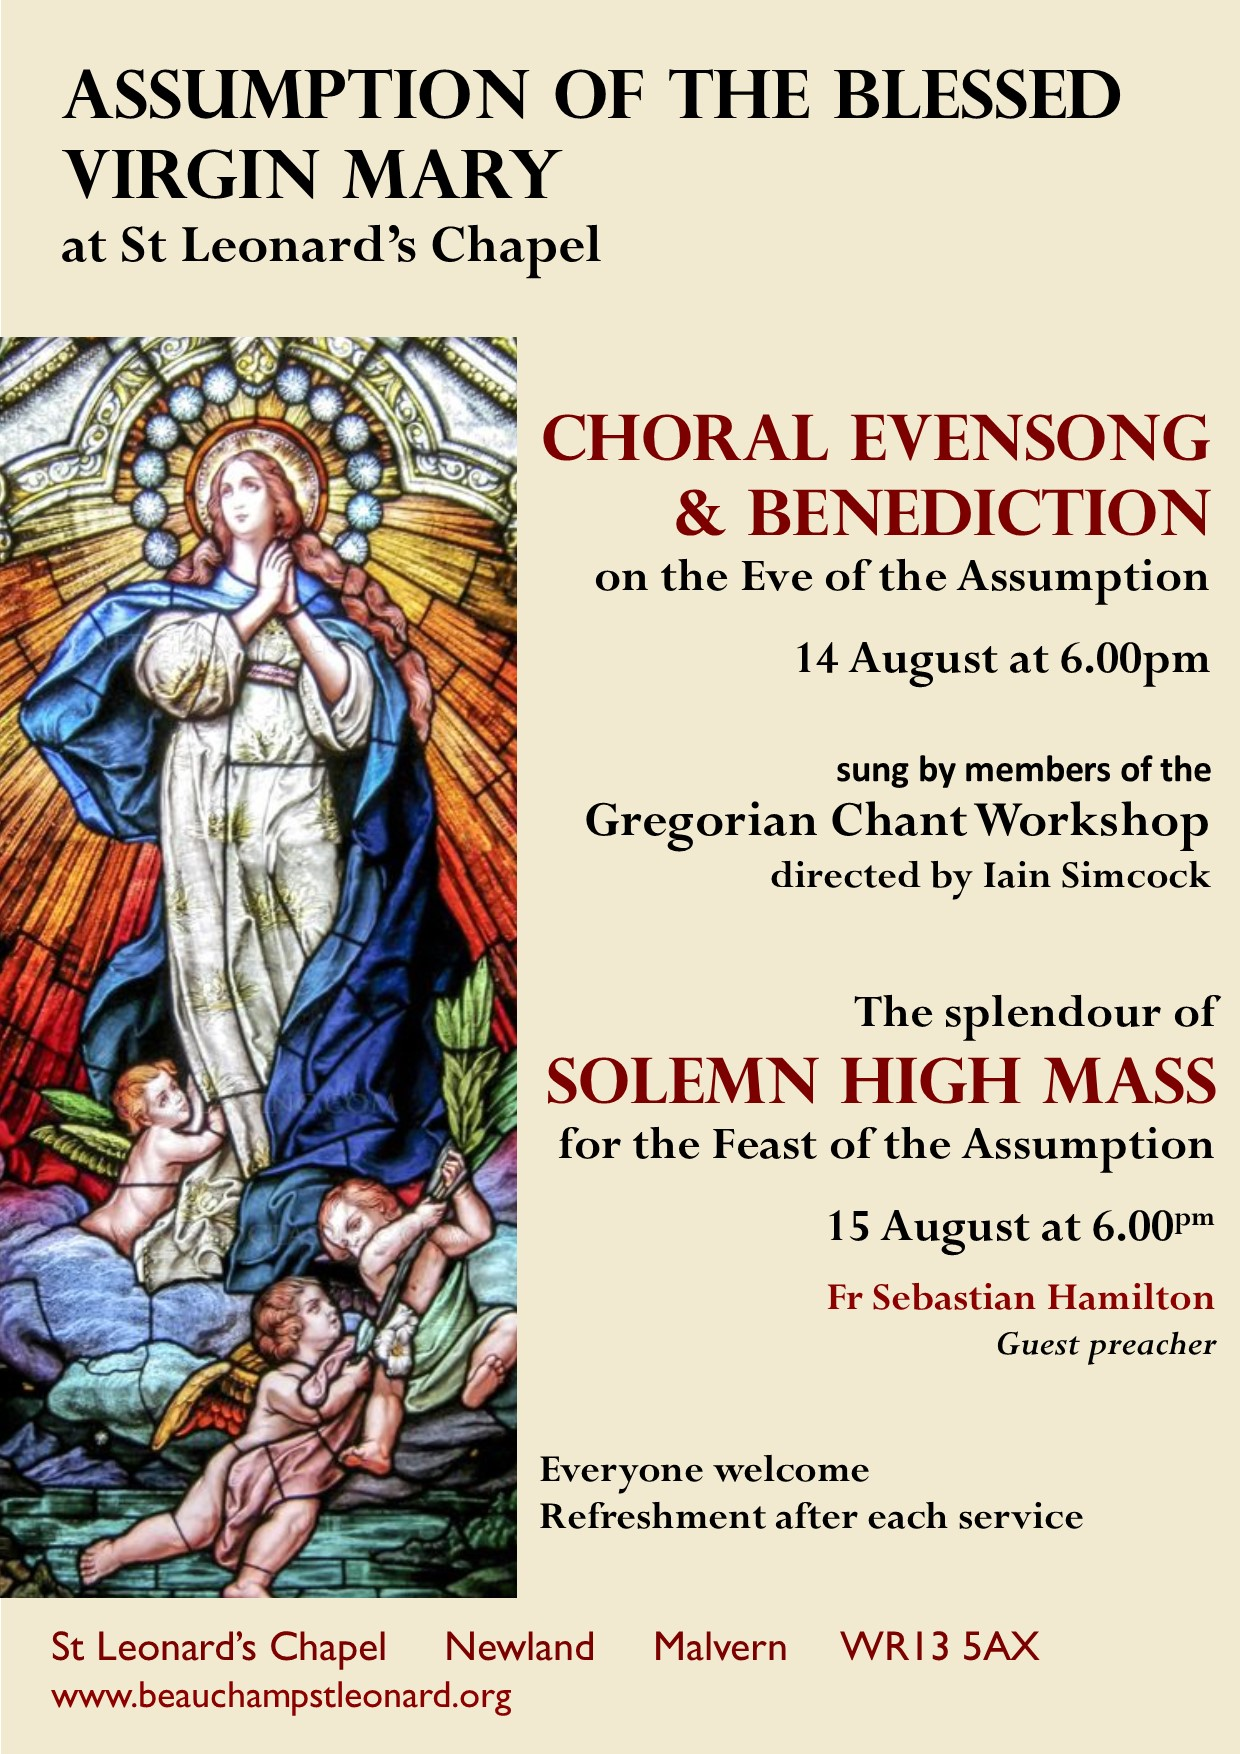 Choral Evensong & Benediction for the Eve of the Assumption of the Blessed Virgin Mary